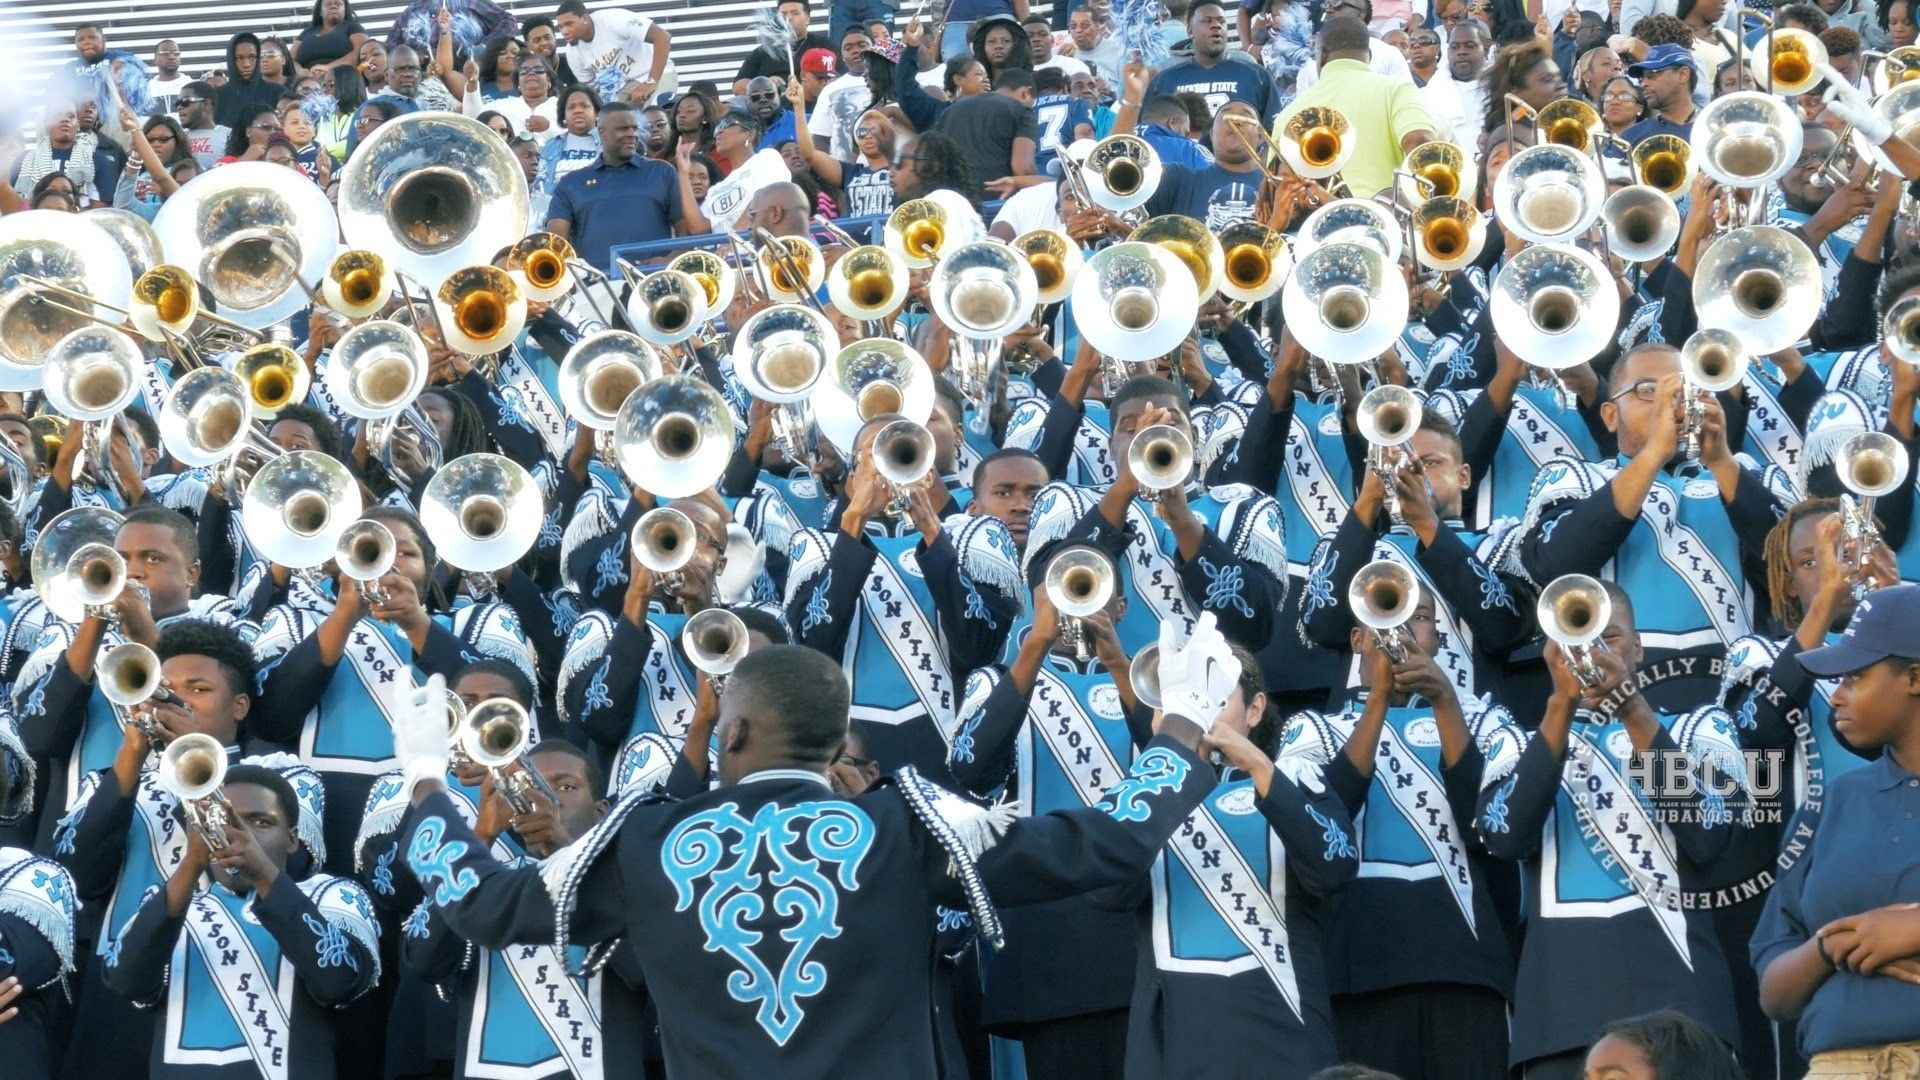 1920x1080 Marching Band Music Wallpaper (85+ images)